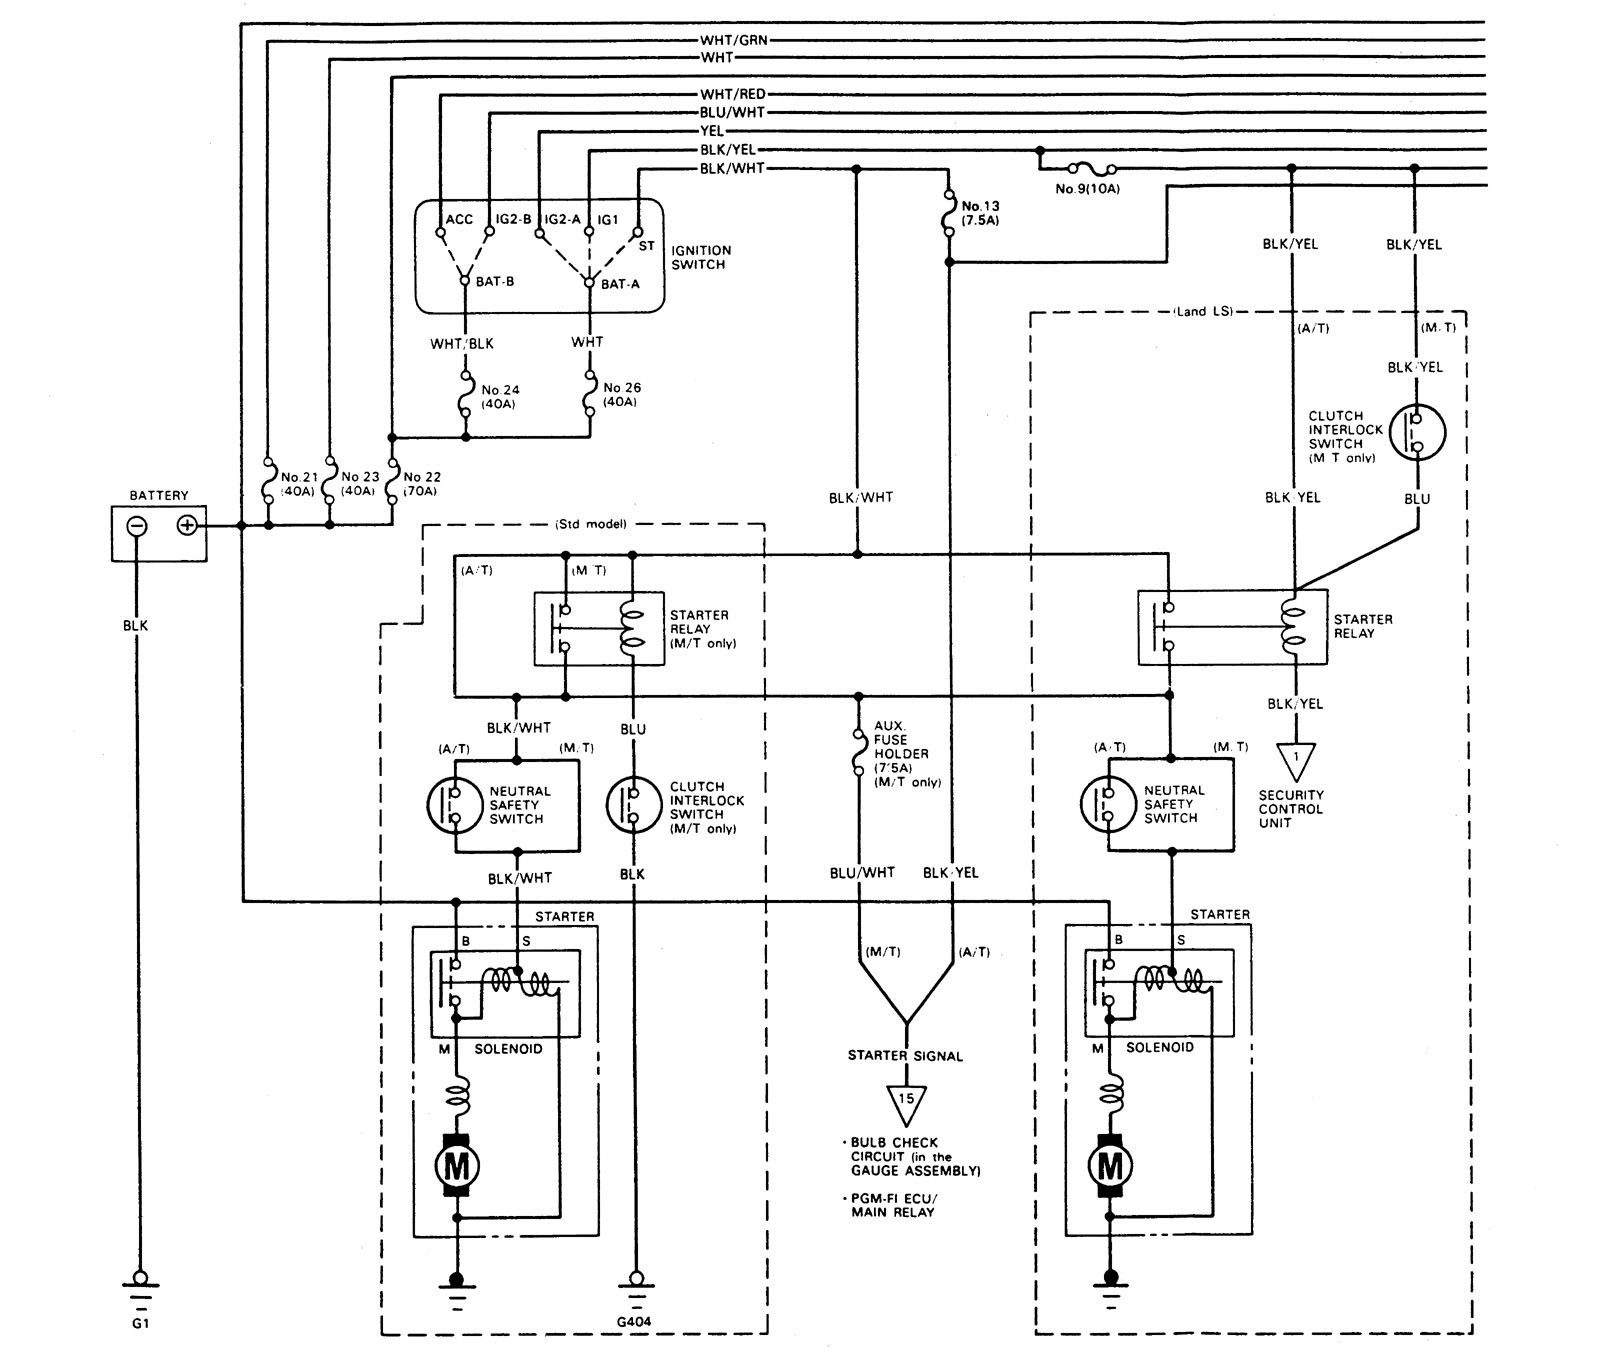 acura legend  1989  - wiring diagram - starting